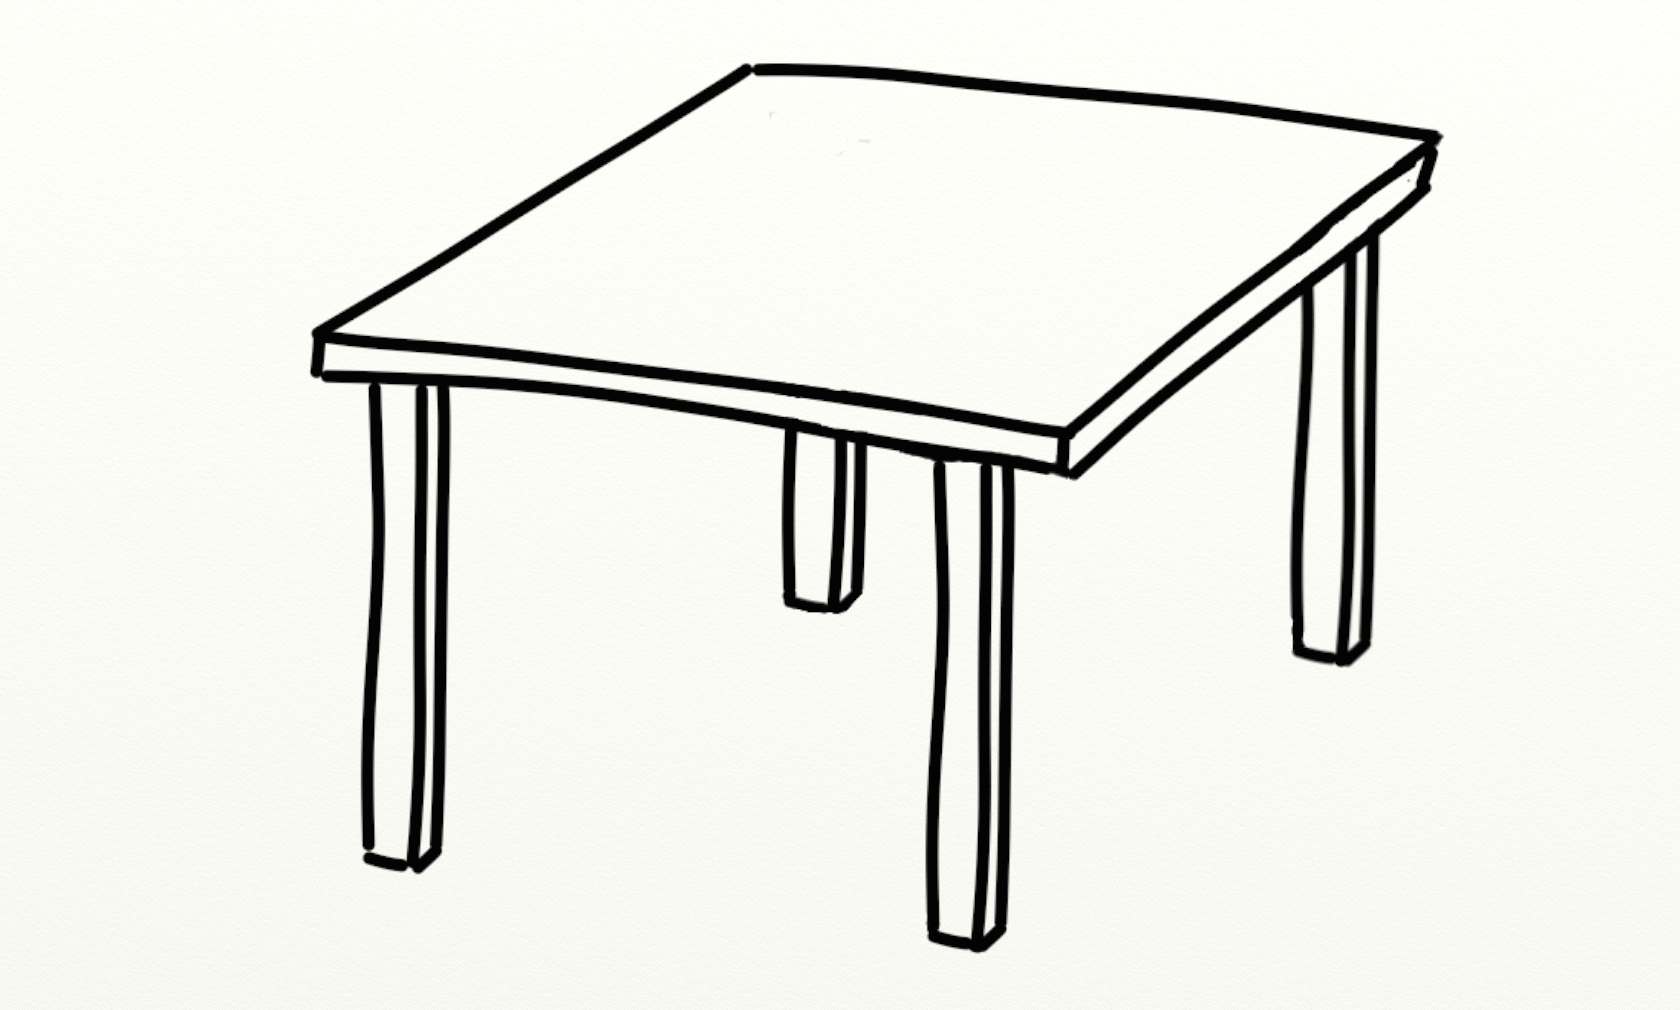 Round table black and white clipart clipart kid